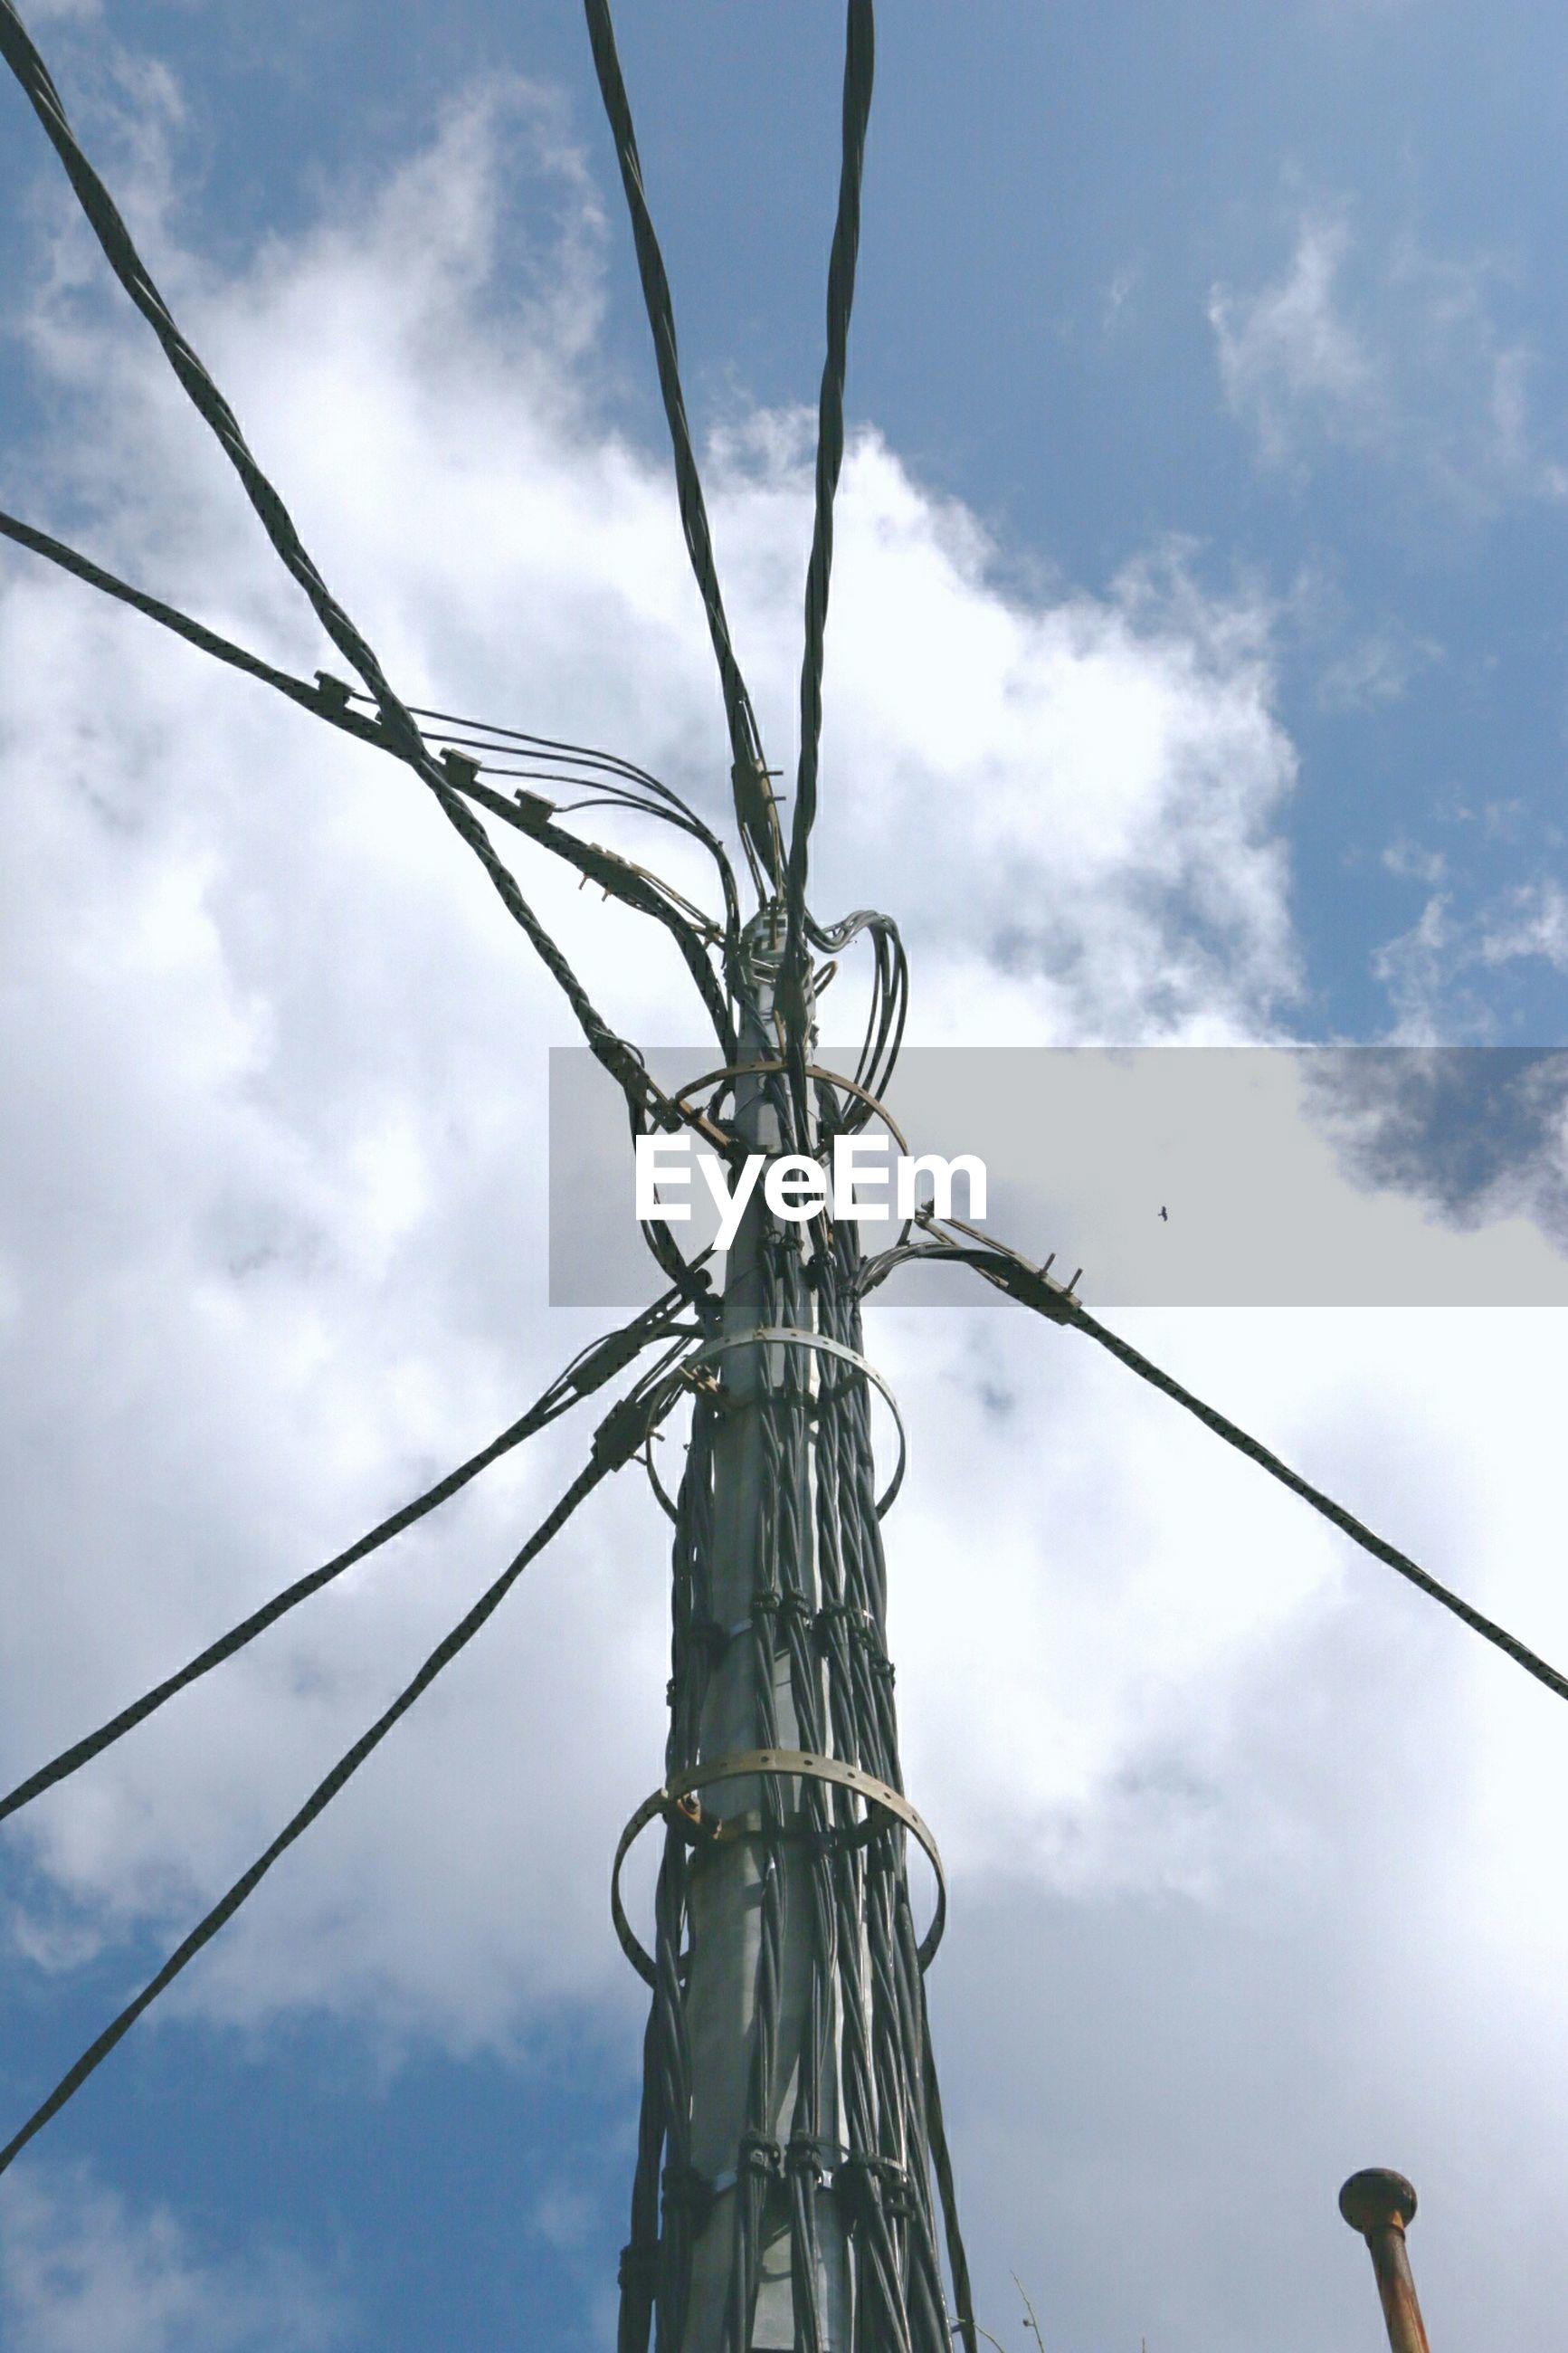 Low angle view of electricity pylon against cloudy sky